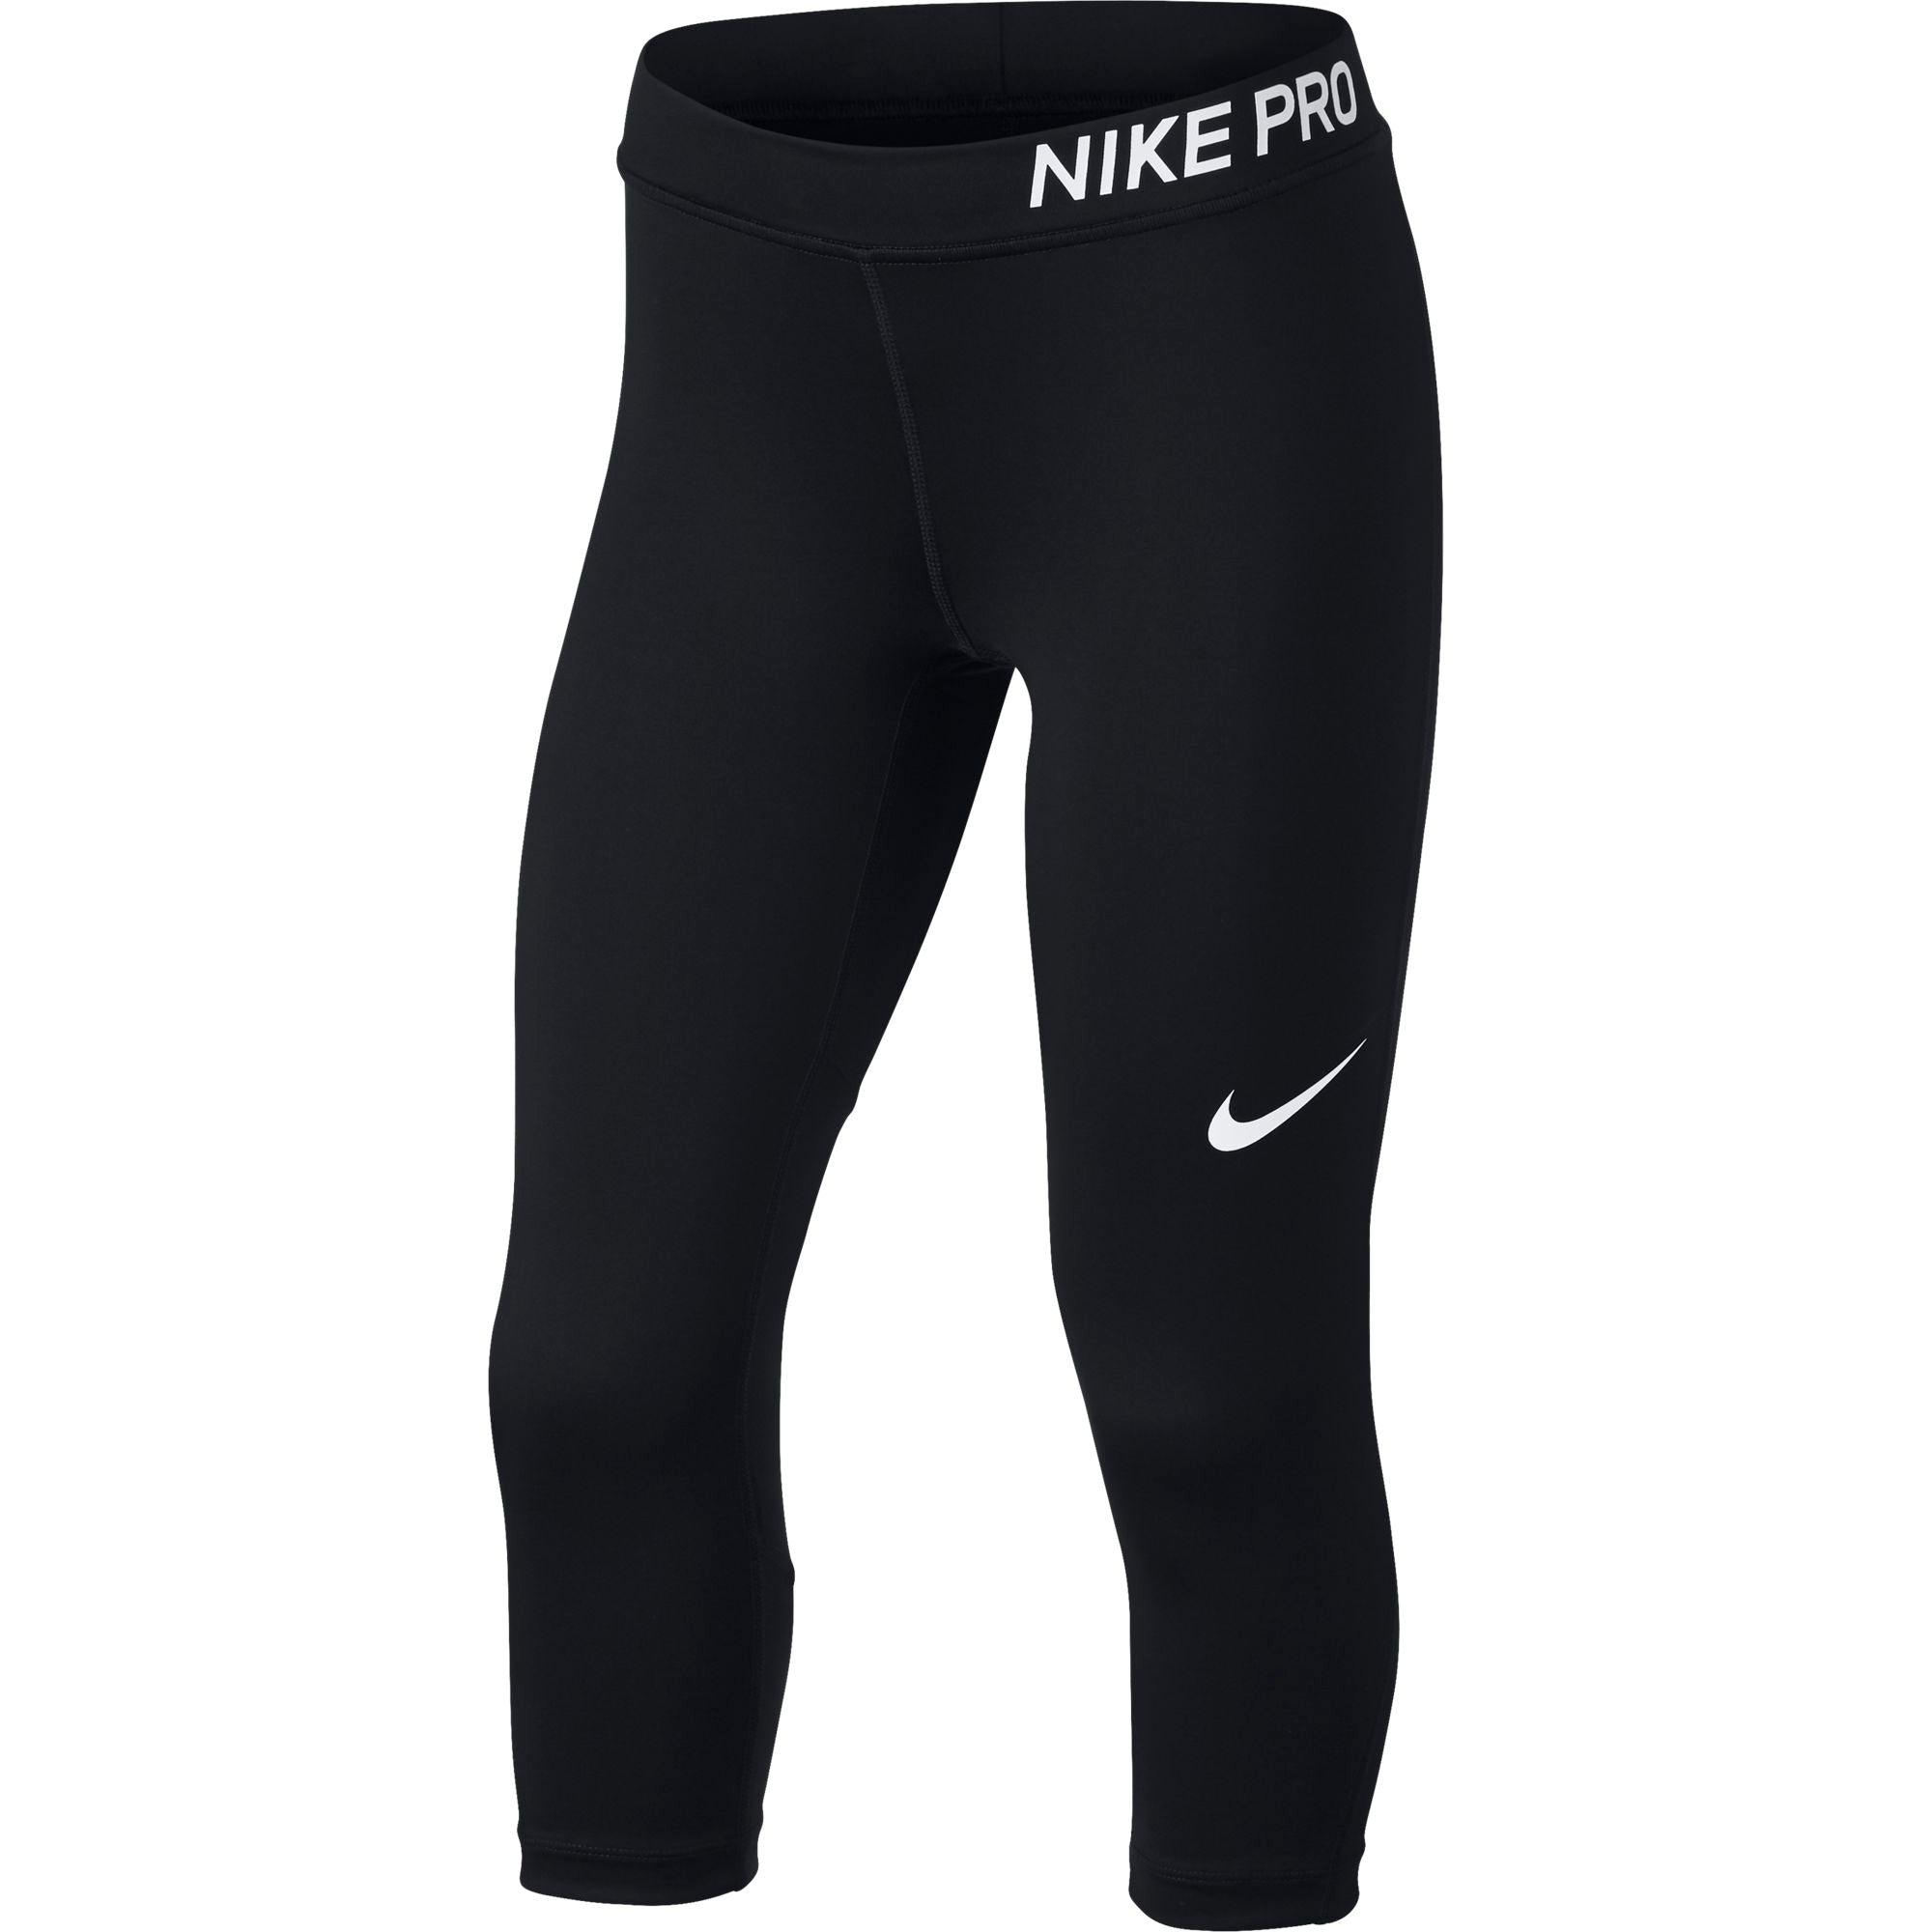 Nike Kids Training Pro Capris - NK-890219-010